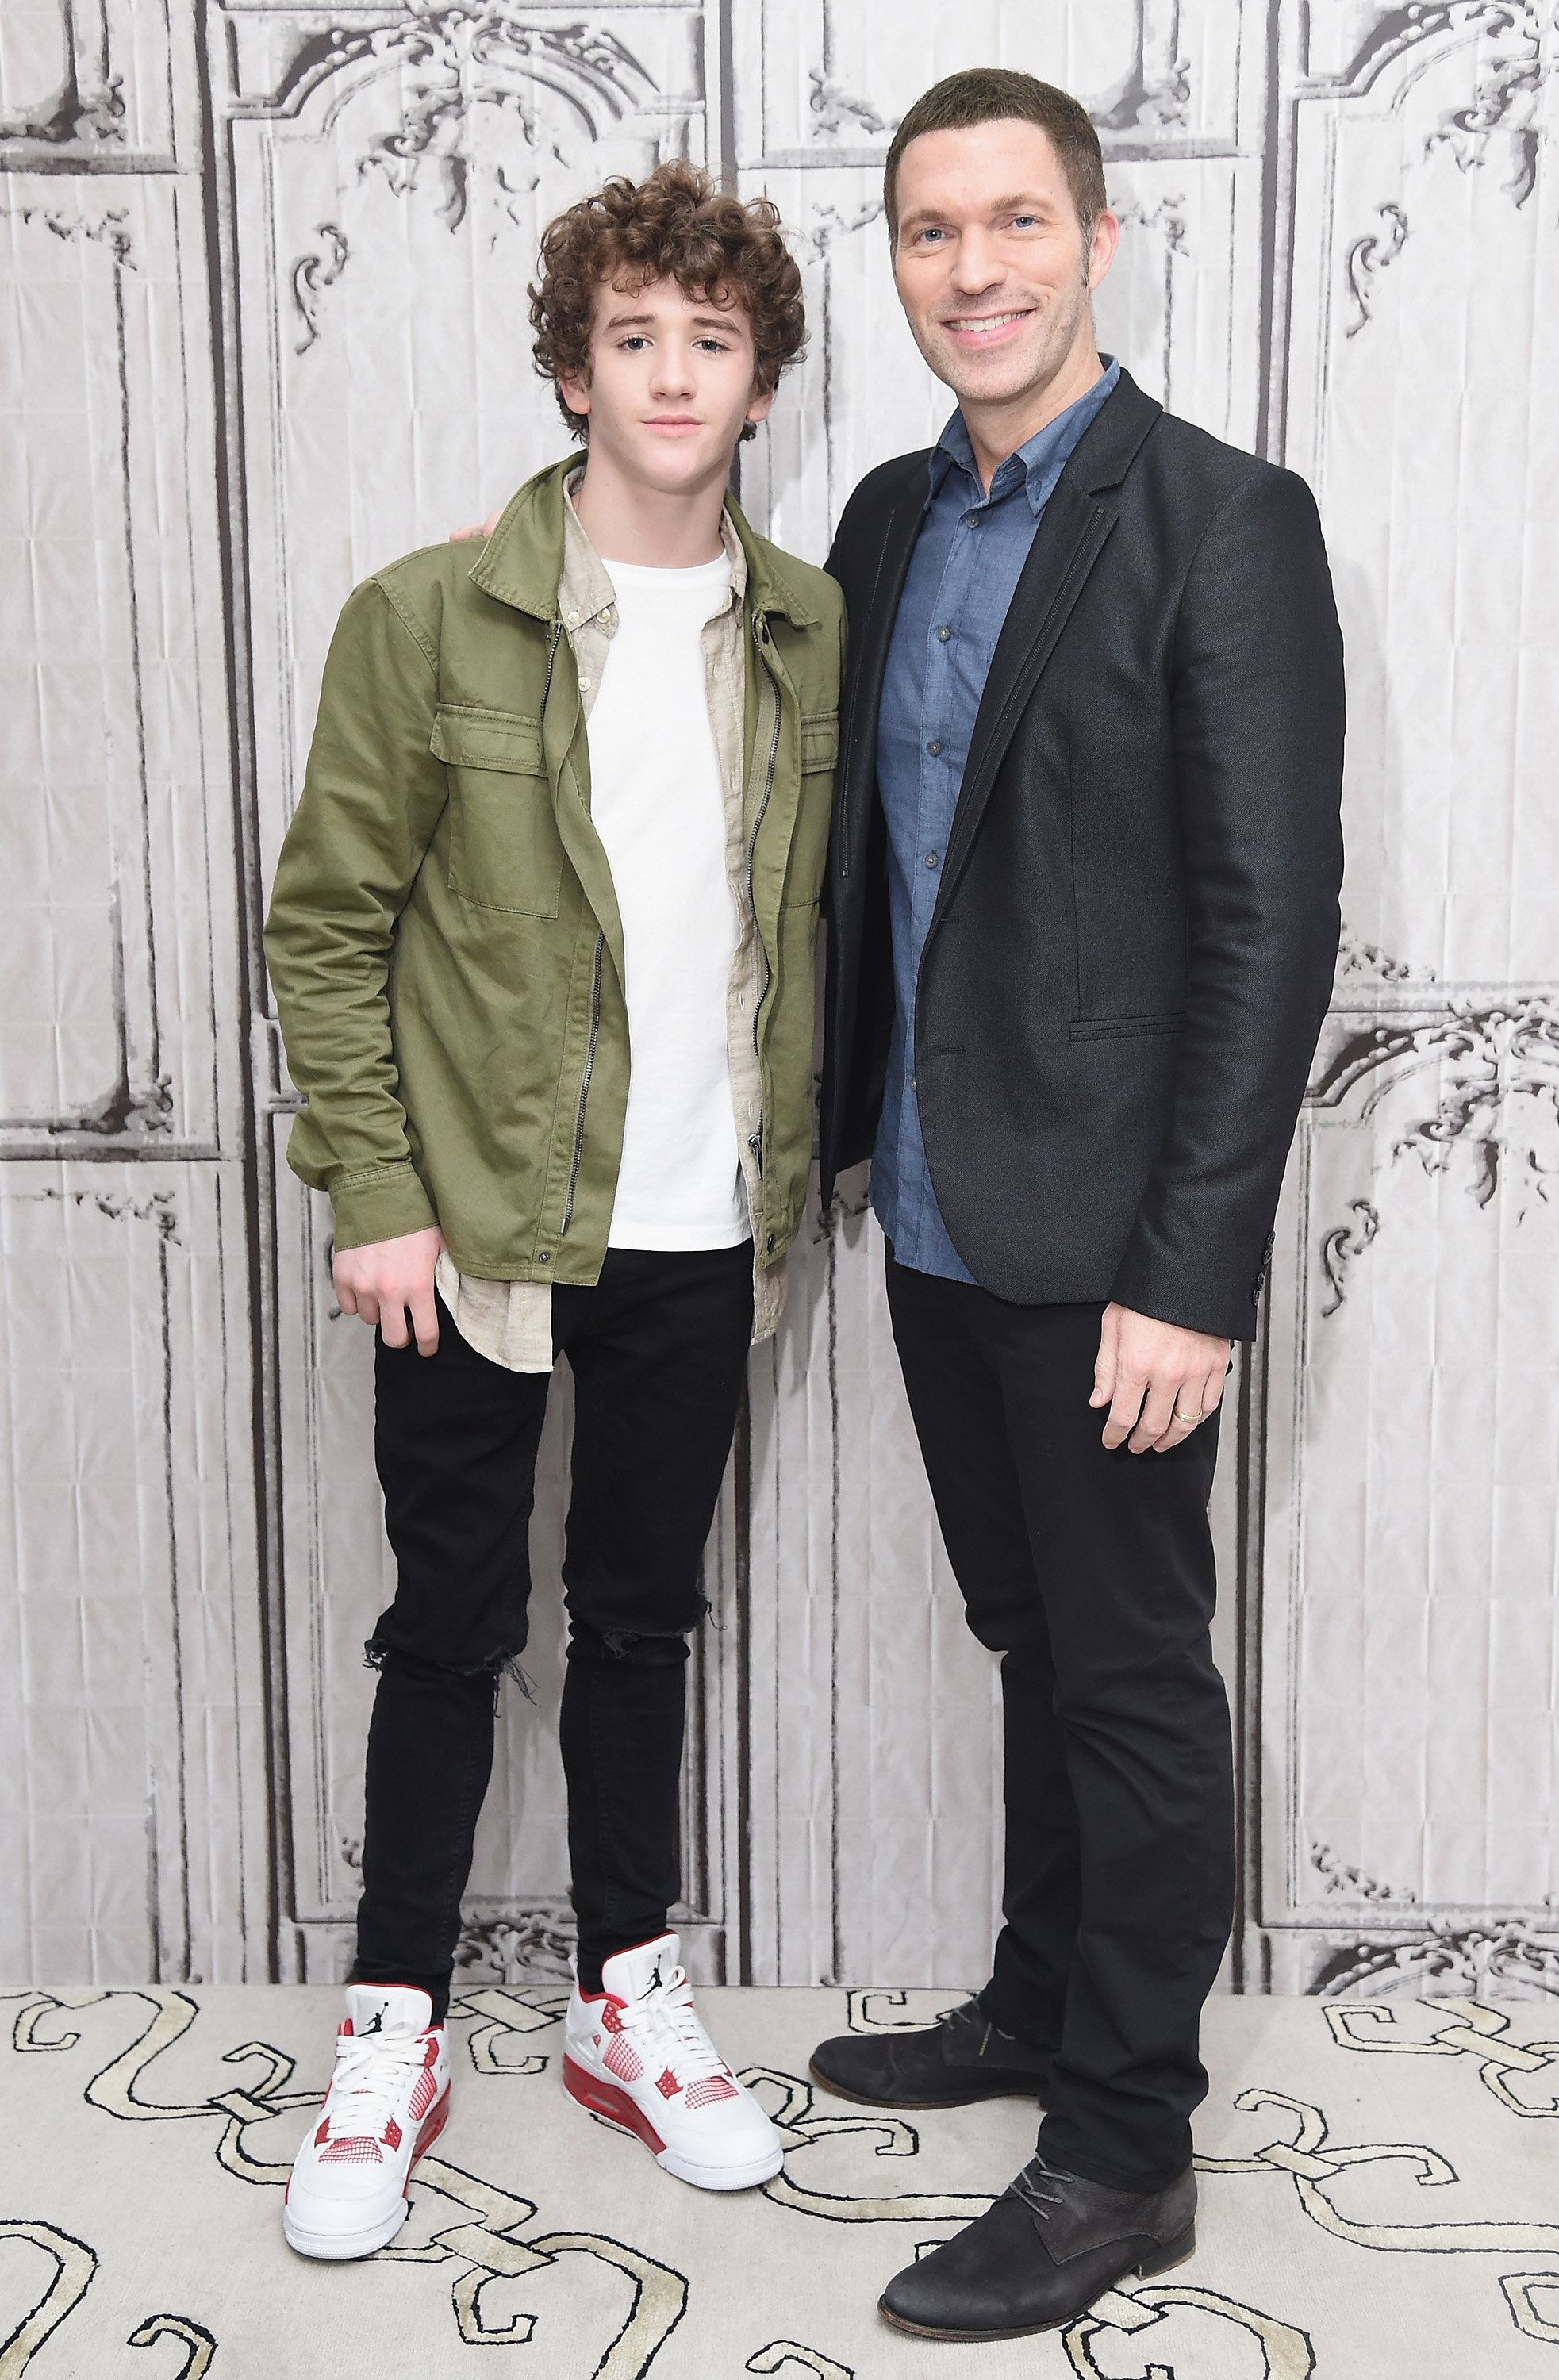 NEW YORK, NY - AUGUST 17:  Actor Art Parkinson (L) and director Travis Knight attend the discussion of the movie 'Kubo and the Two Strings' at AOL HQ on August 17, 2016 in New York City.  (Photo by Michael Loccisano/Getty Images)